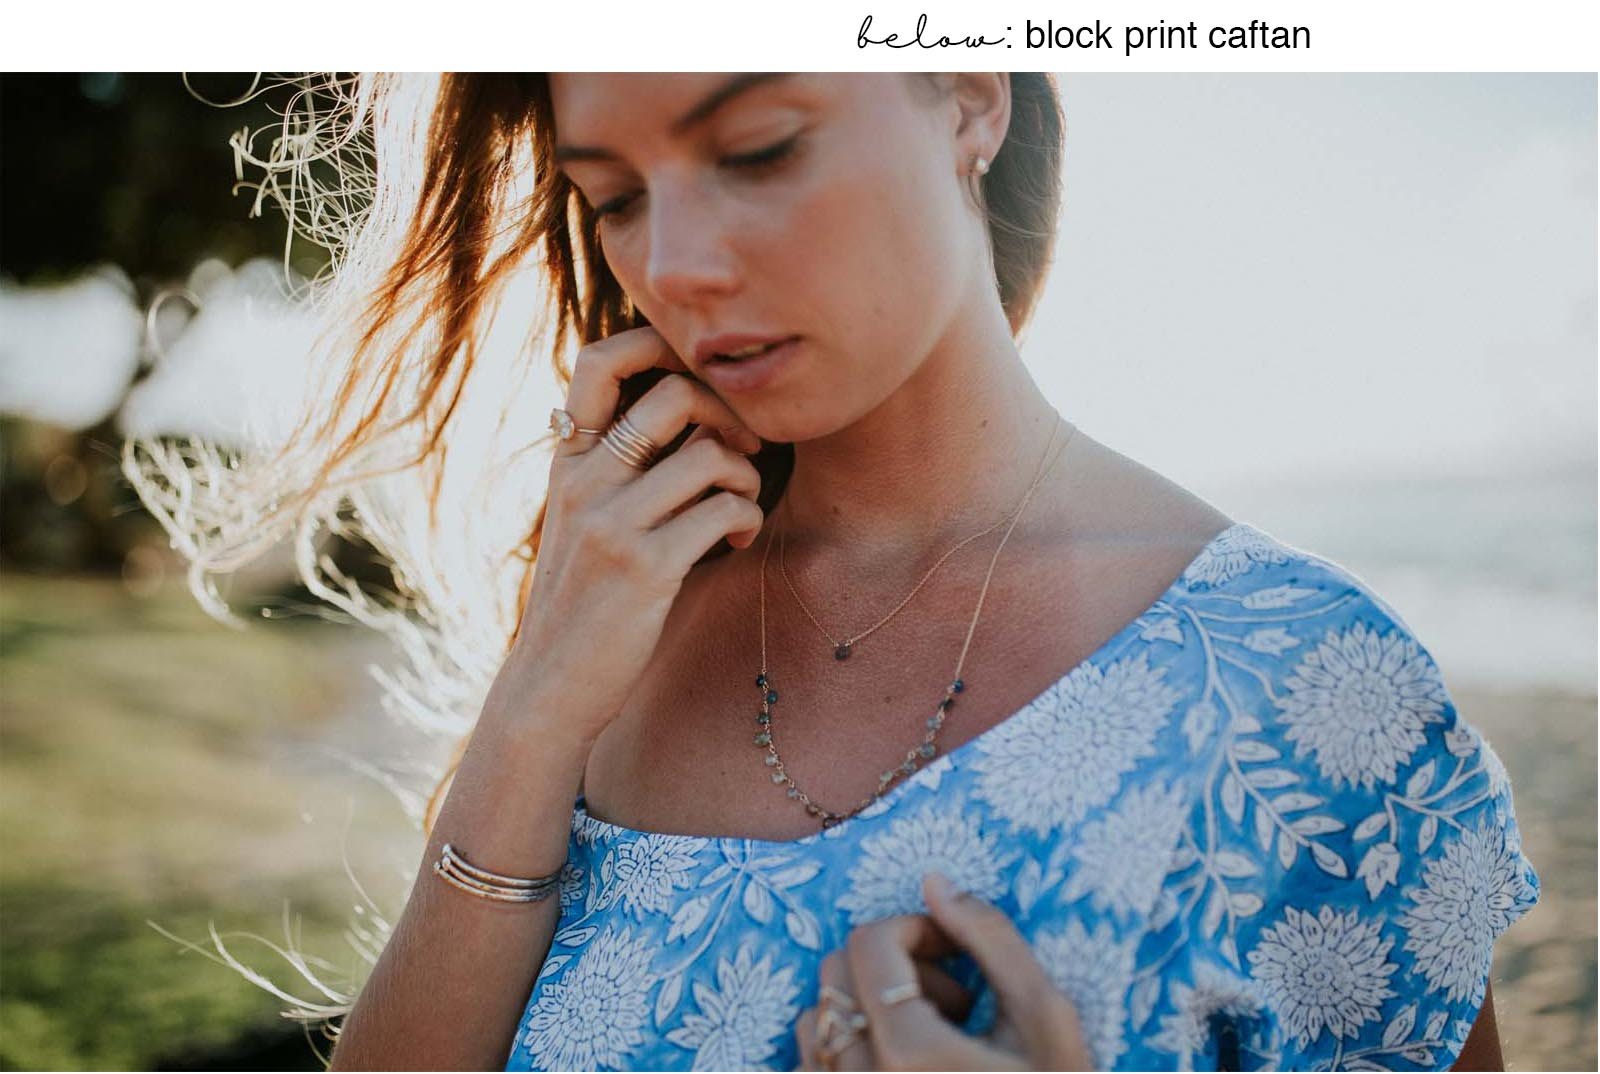 summer caftan dress